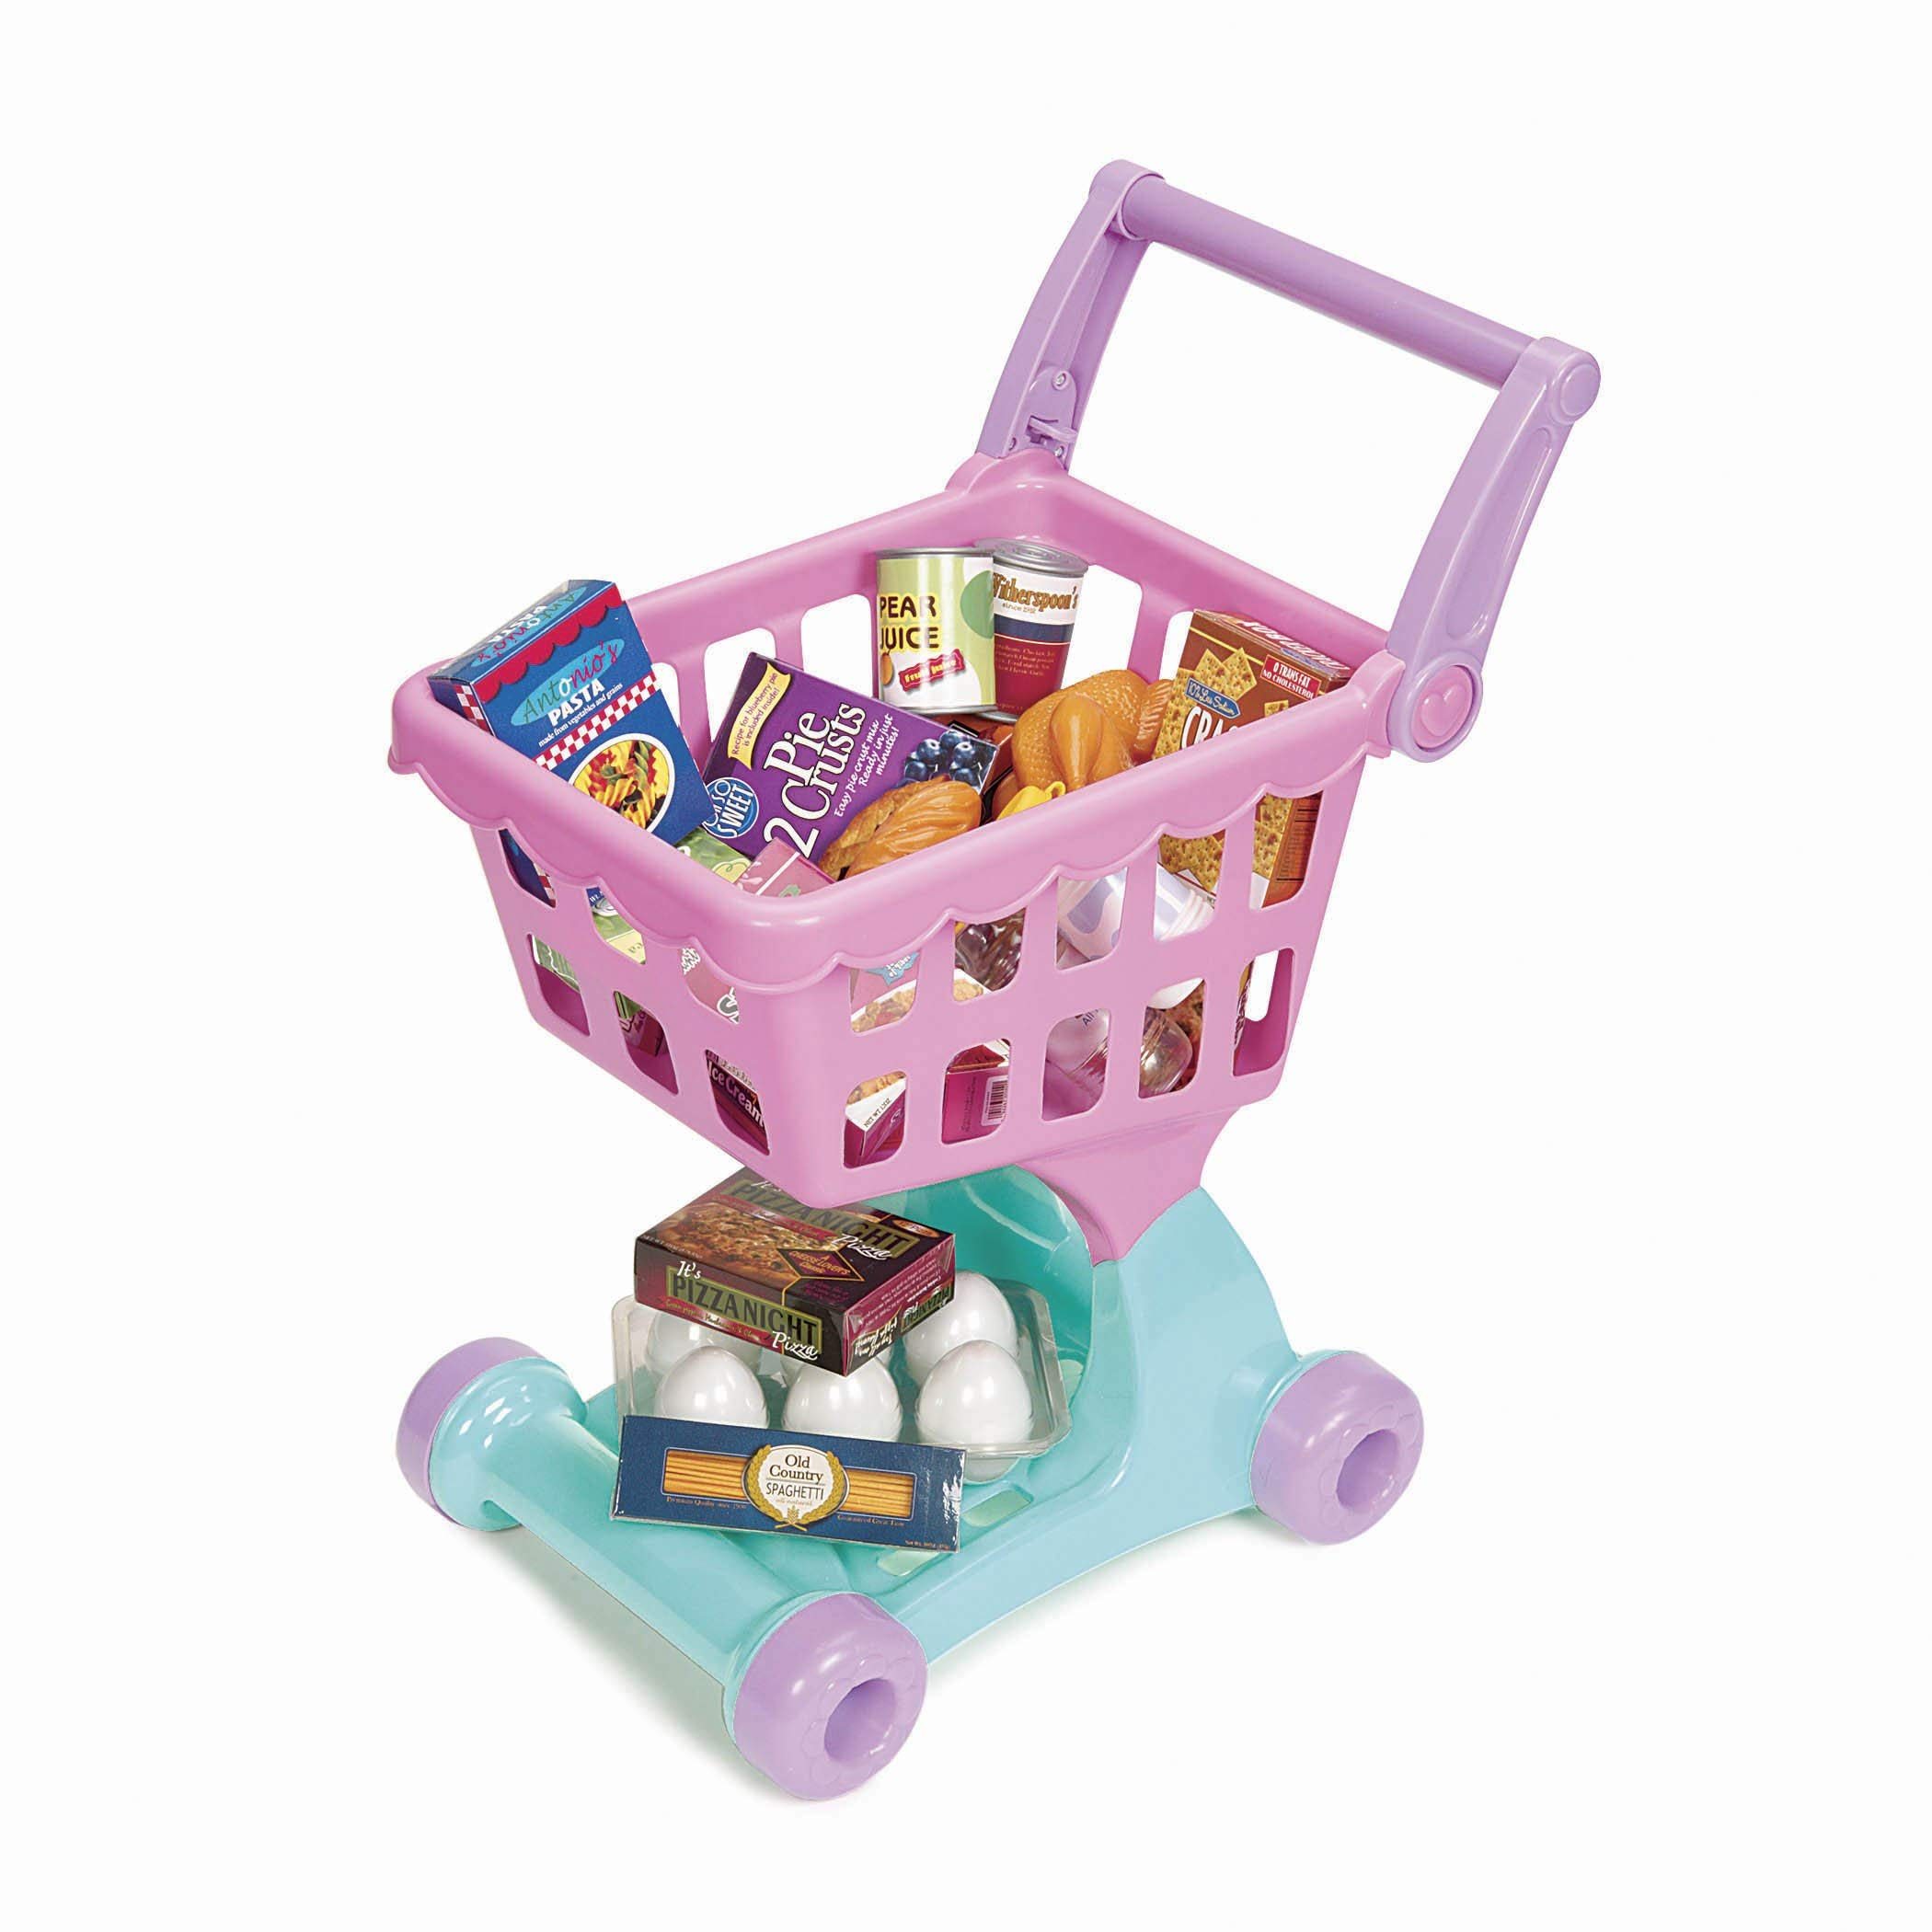 Play Circle by Battat - Shopping Day Grocery Cart - 30-piece Toy Shopping Cart and Pretend Food Playset - Grocery, Kitchen and Food Toys for Toddlers Age 3 Years and Up (Renewed) by Play Circle by Battat